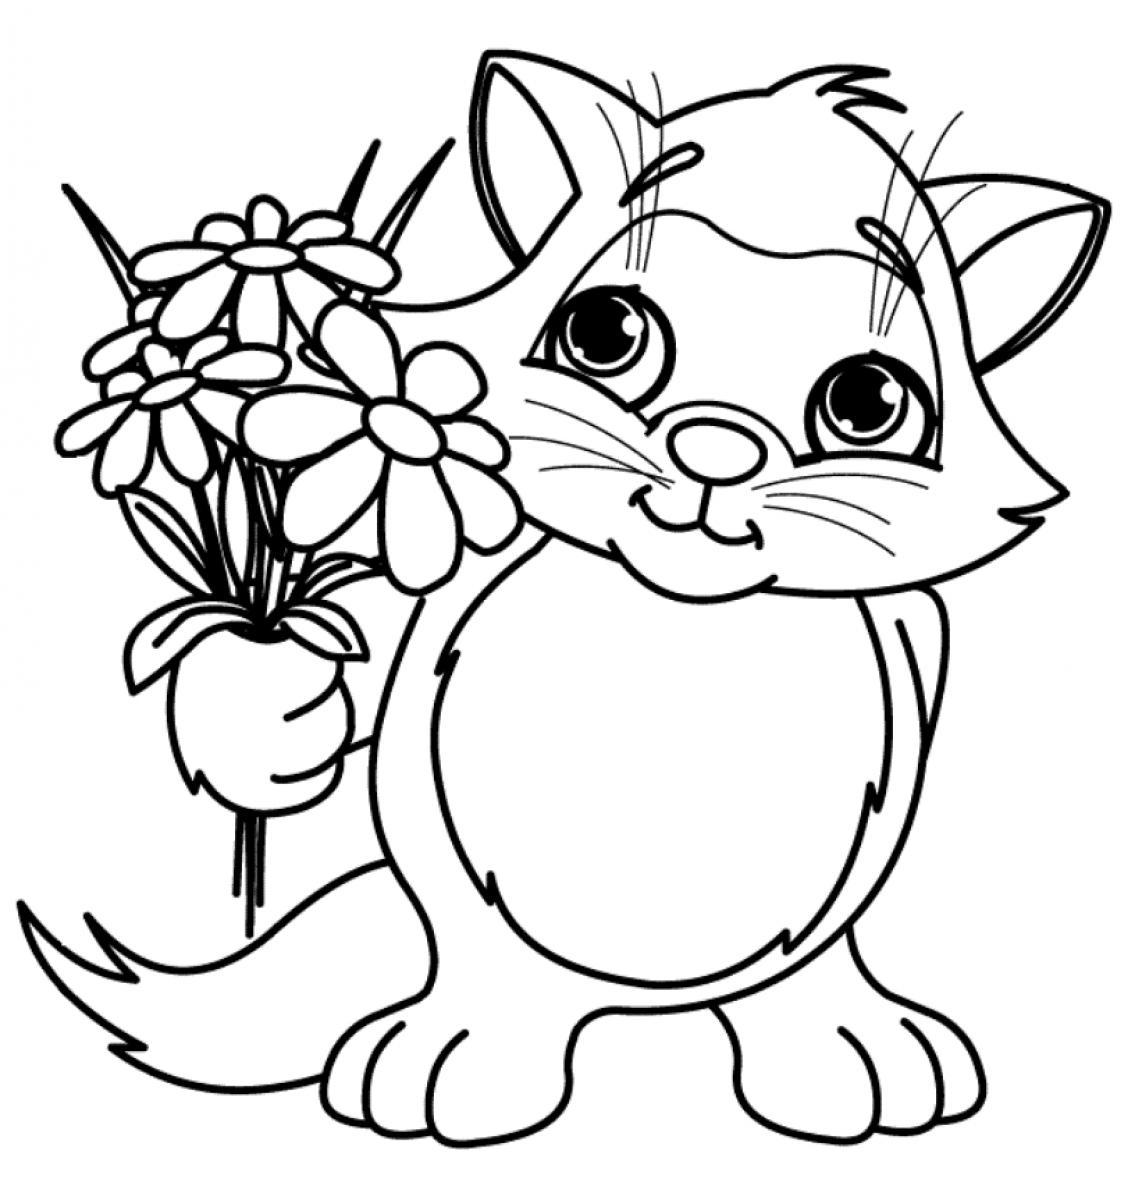 colouring page of flowers peony flower coloring pages download and print peony flowers colouring page of